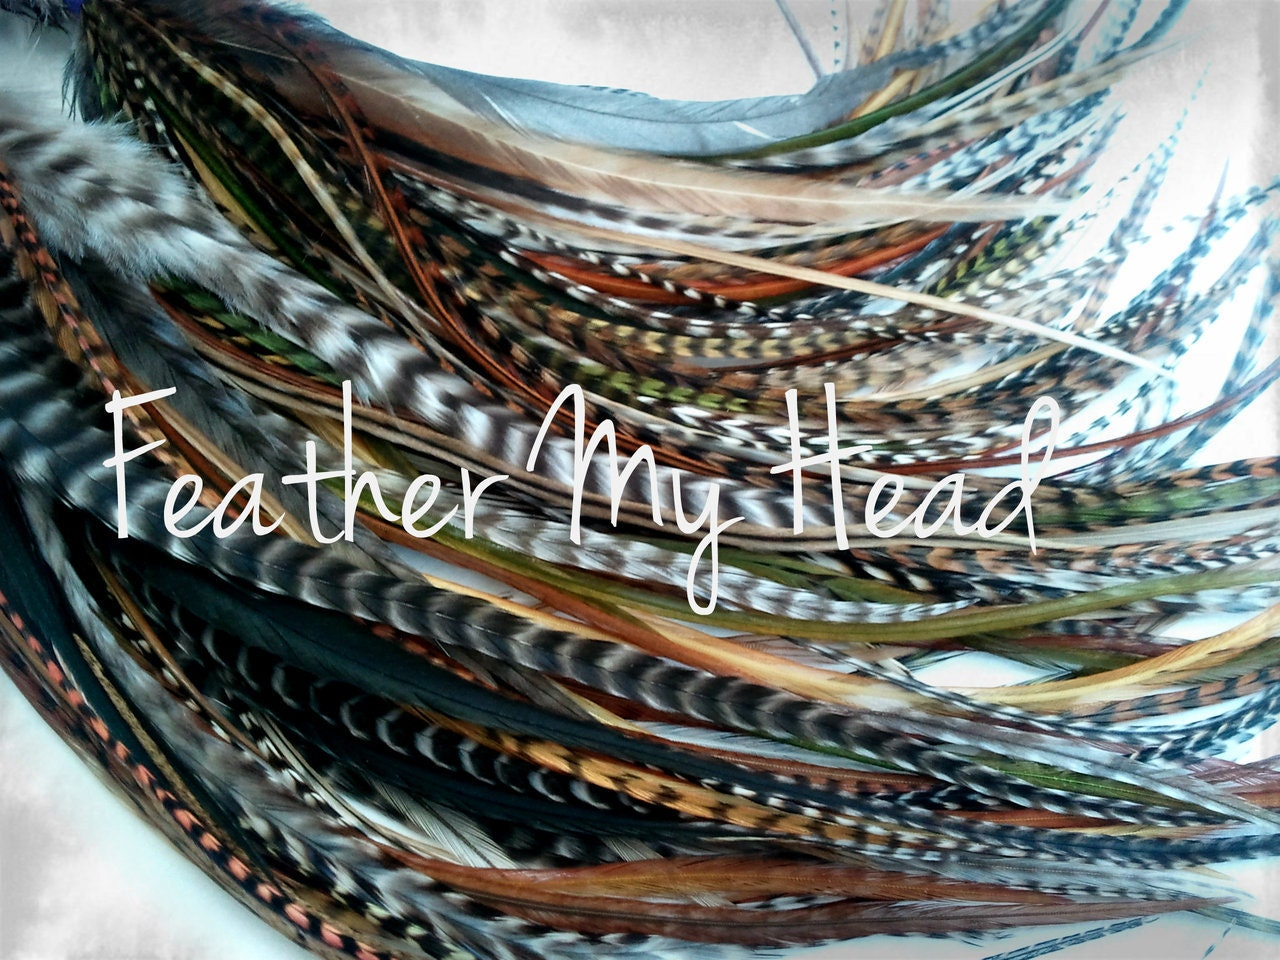 Feather hair extensions do it yourself diy kit 16 pc zoom solutioingenieria Gallery